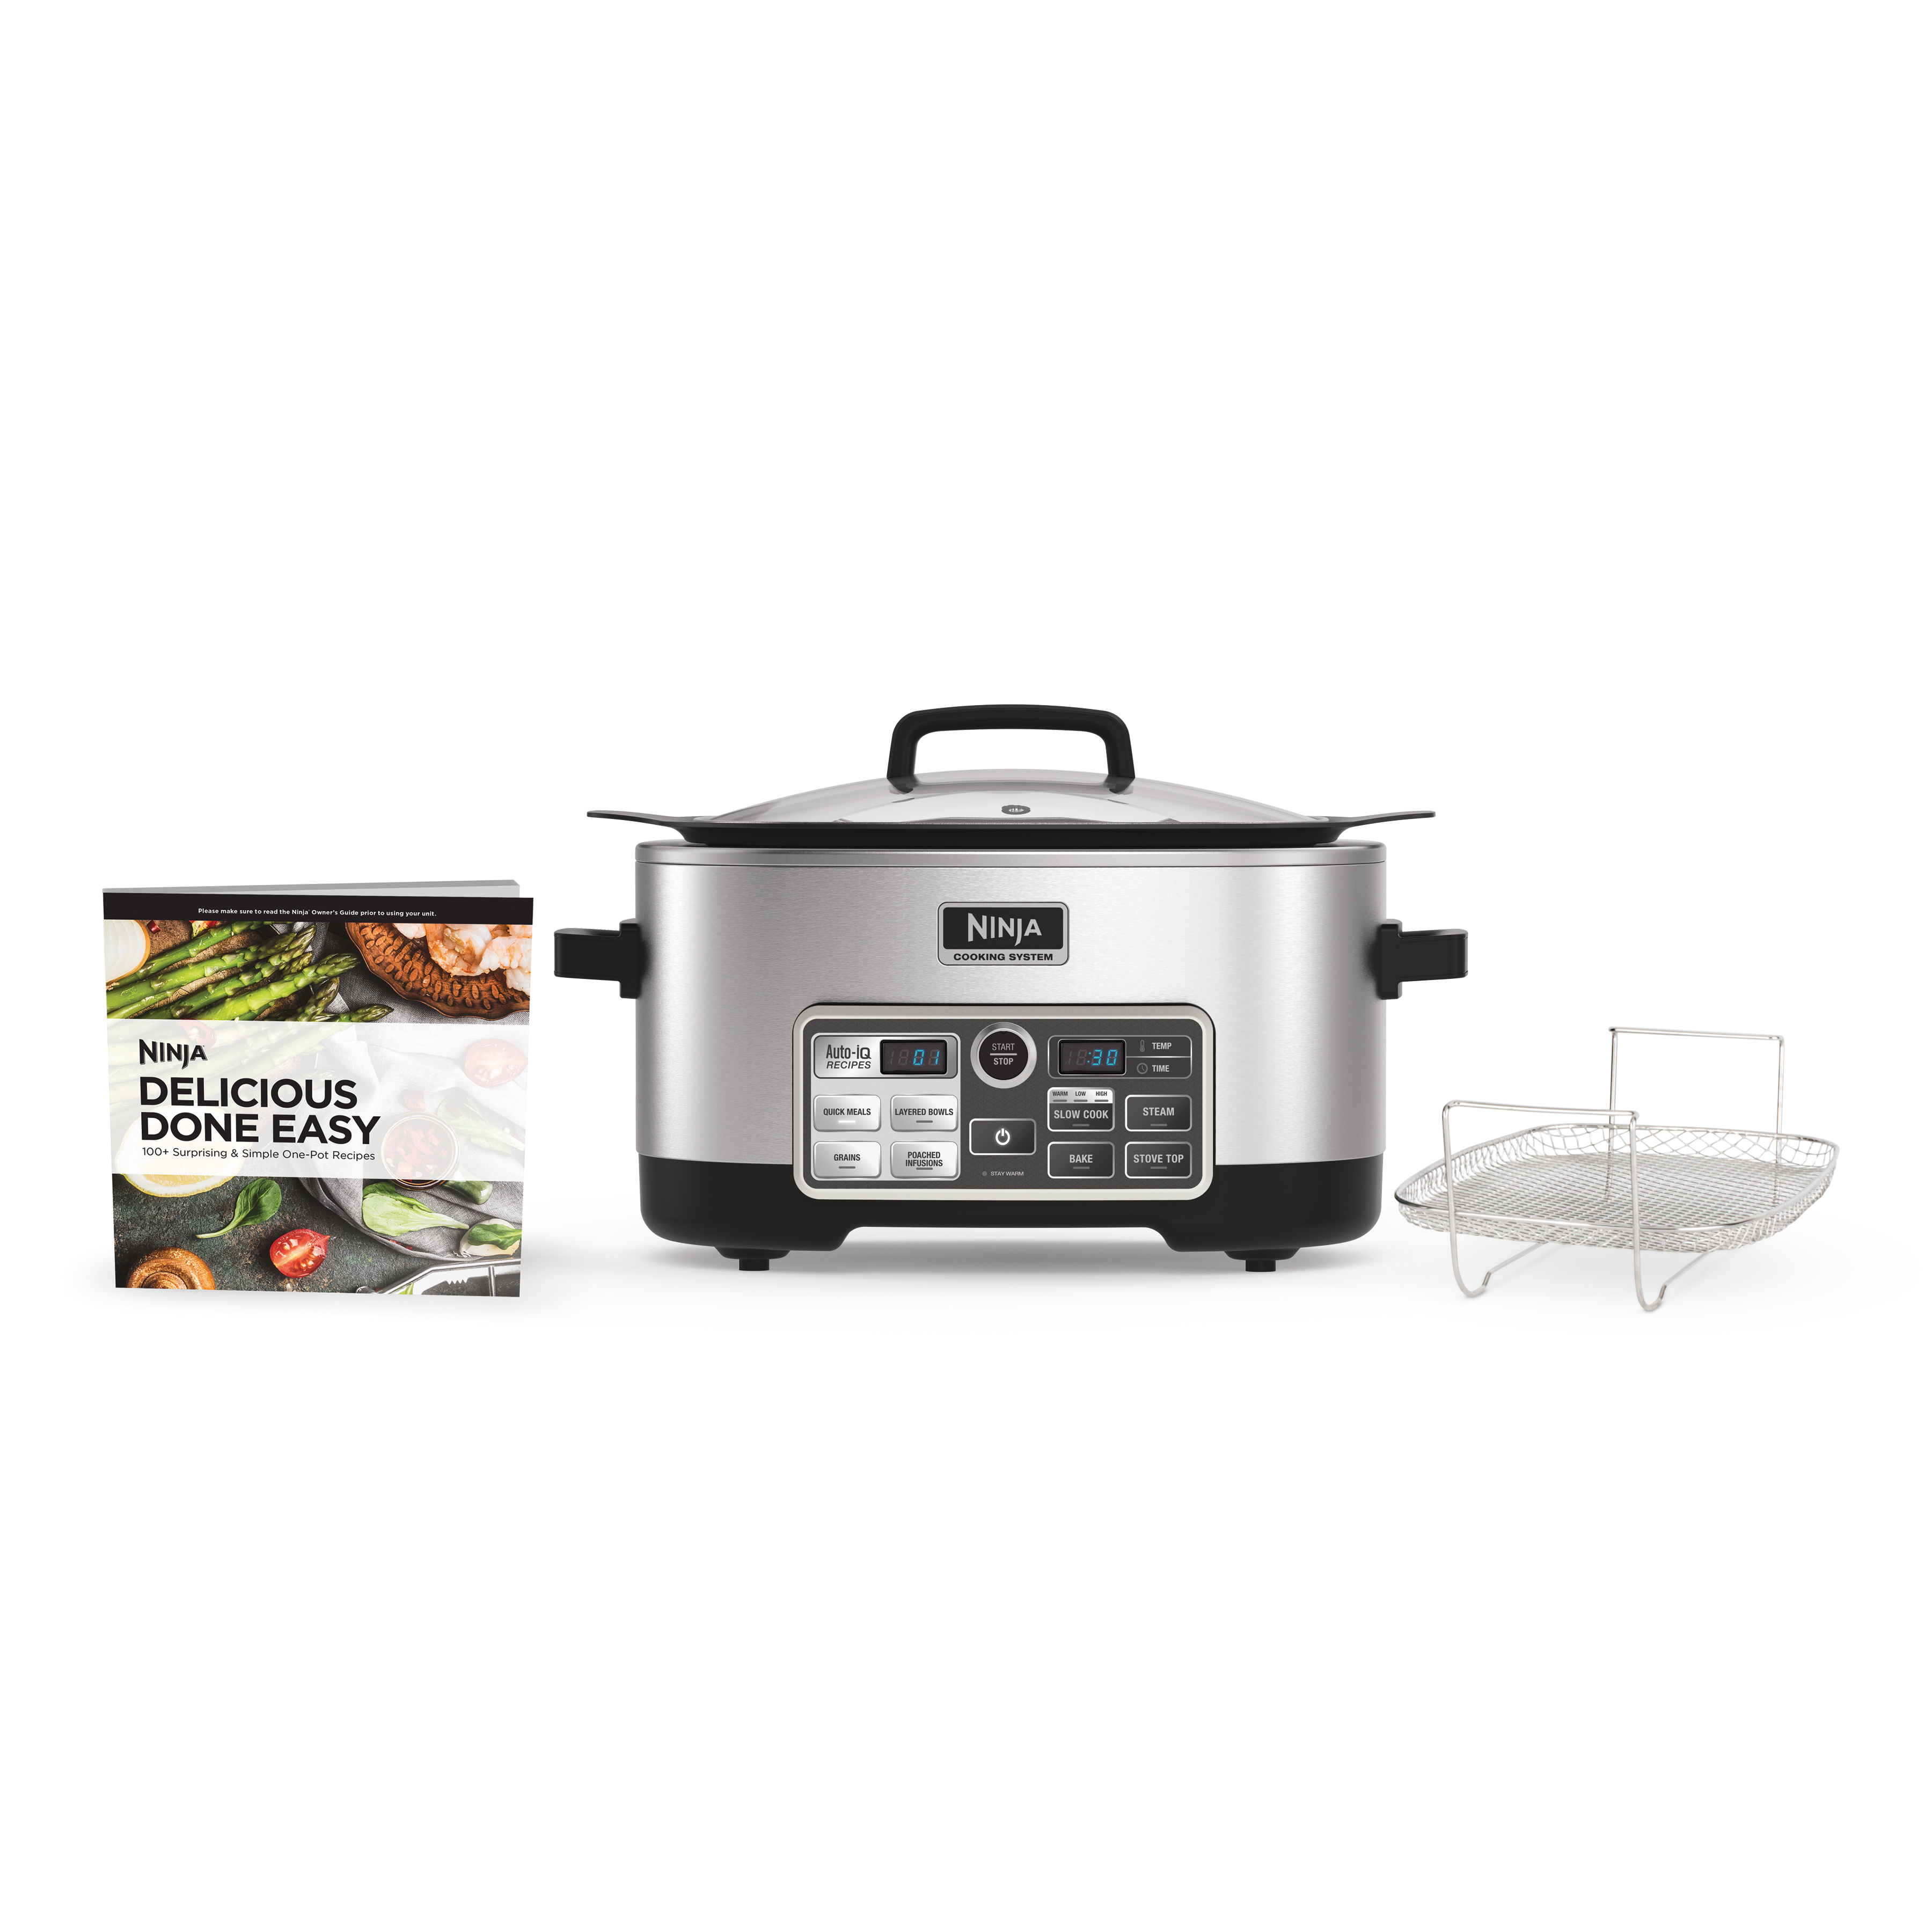 Ninja Cooking System with Auto-iQ CS960